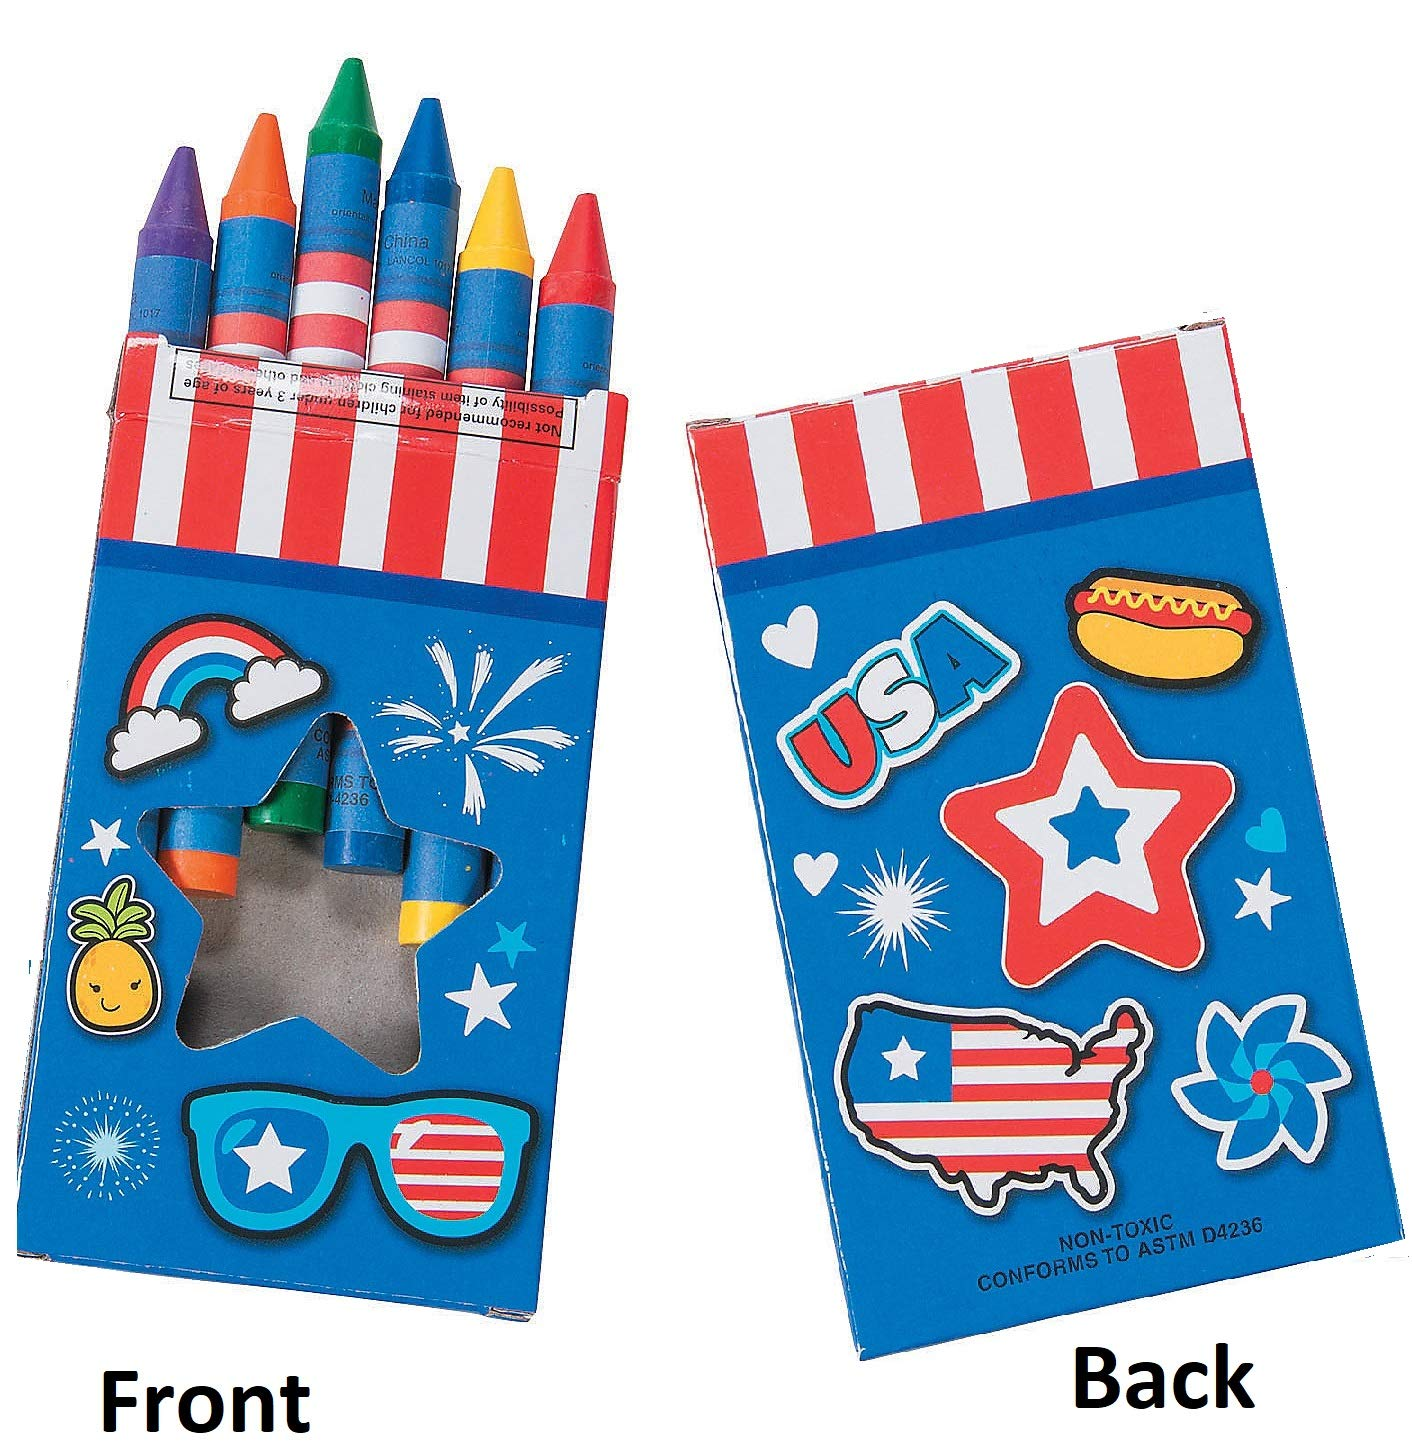 Ten Each 4 16pc Puzzles /& 6-Color 4 x 3//8 Jumbo Crayons 10 Patriotic Color-Your-Own Puzzles /& Crayons Set Memorial Day Veterans Day /& Flag Day Party Favors 4th of July Bundle 20 Independence Day